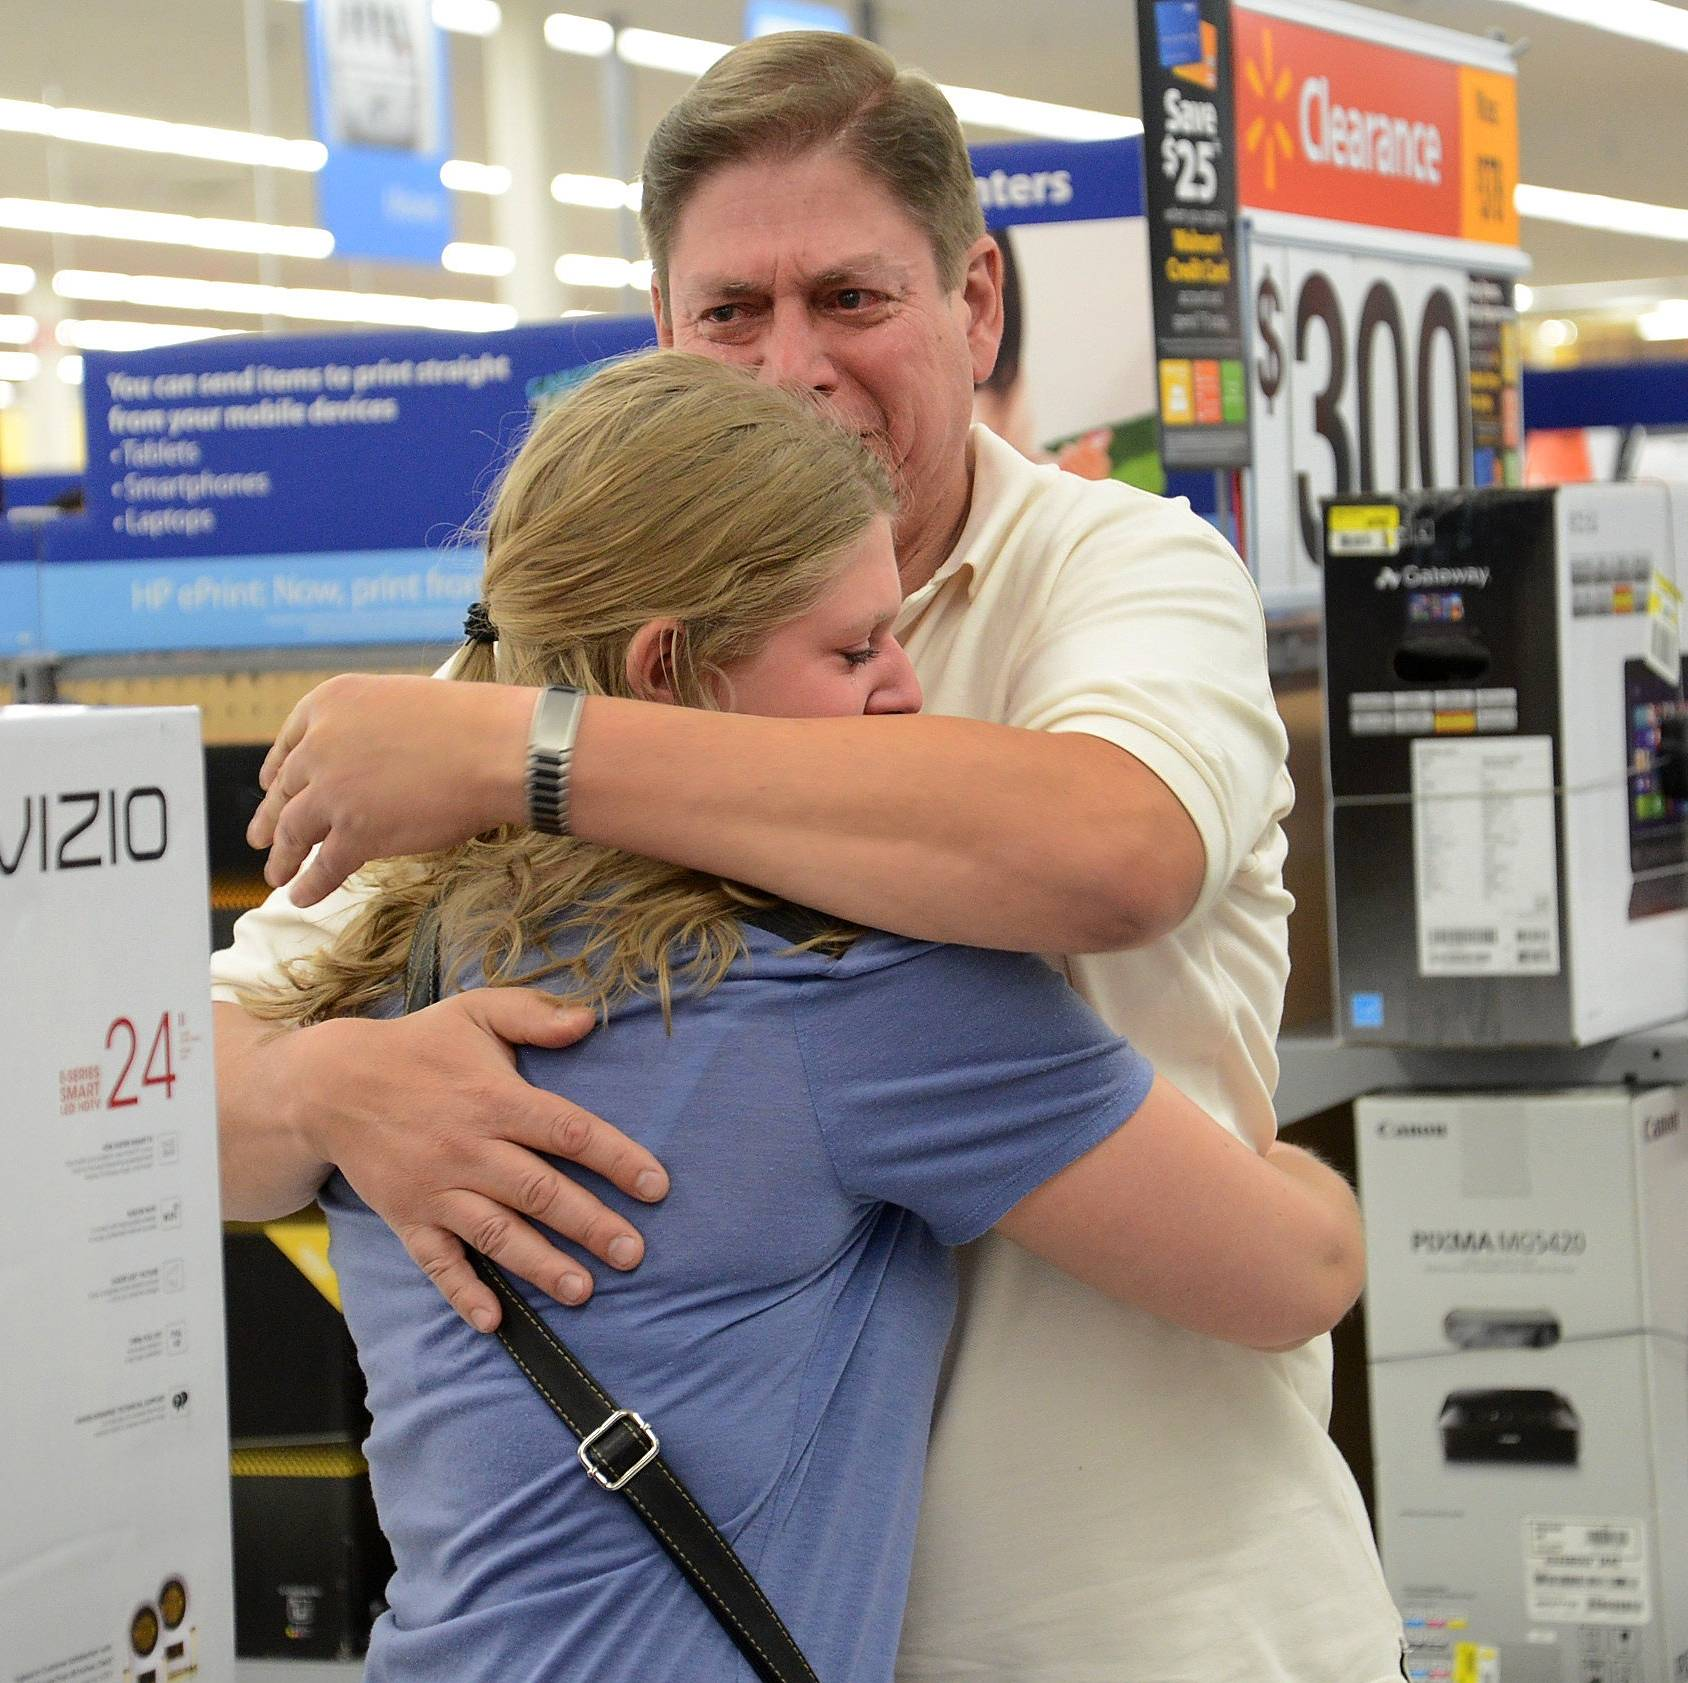 Michael Perrella of Wheeling is surprised at the Wheeling Wal-Mart after his daughter Nicole's entry won him a national contest sponsored by Vizio.